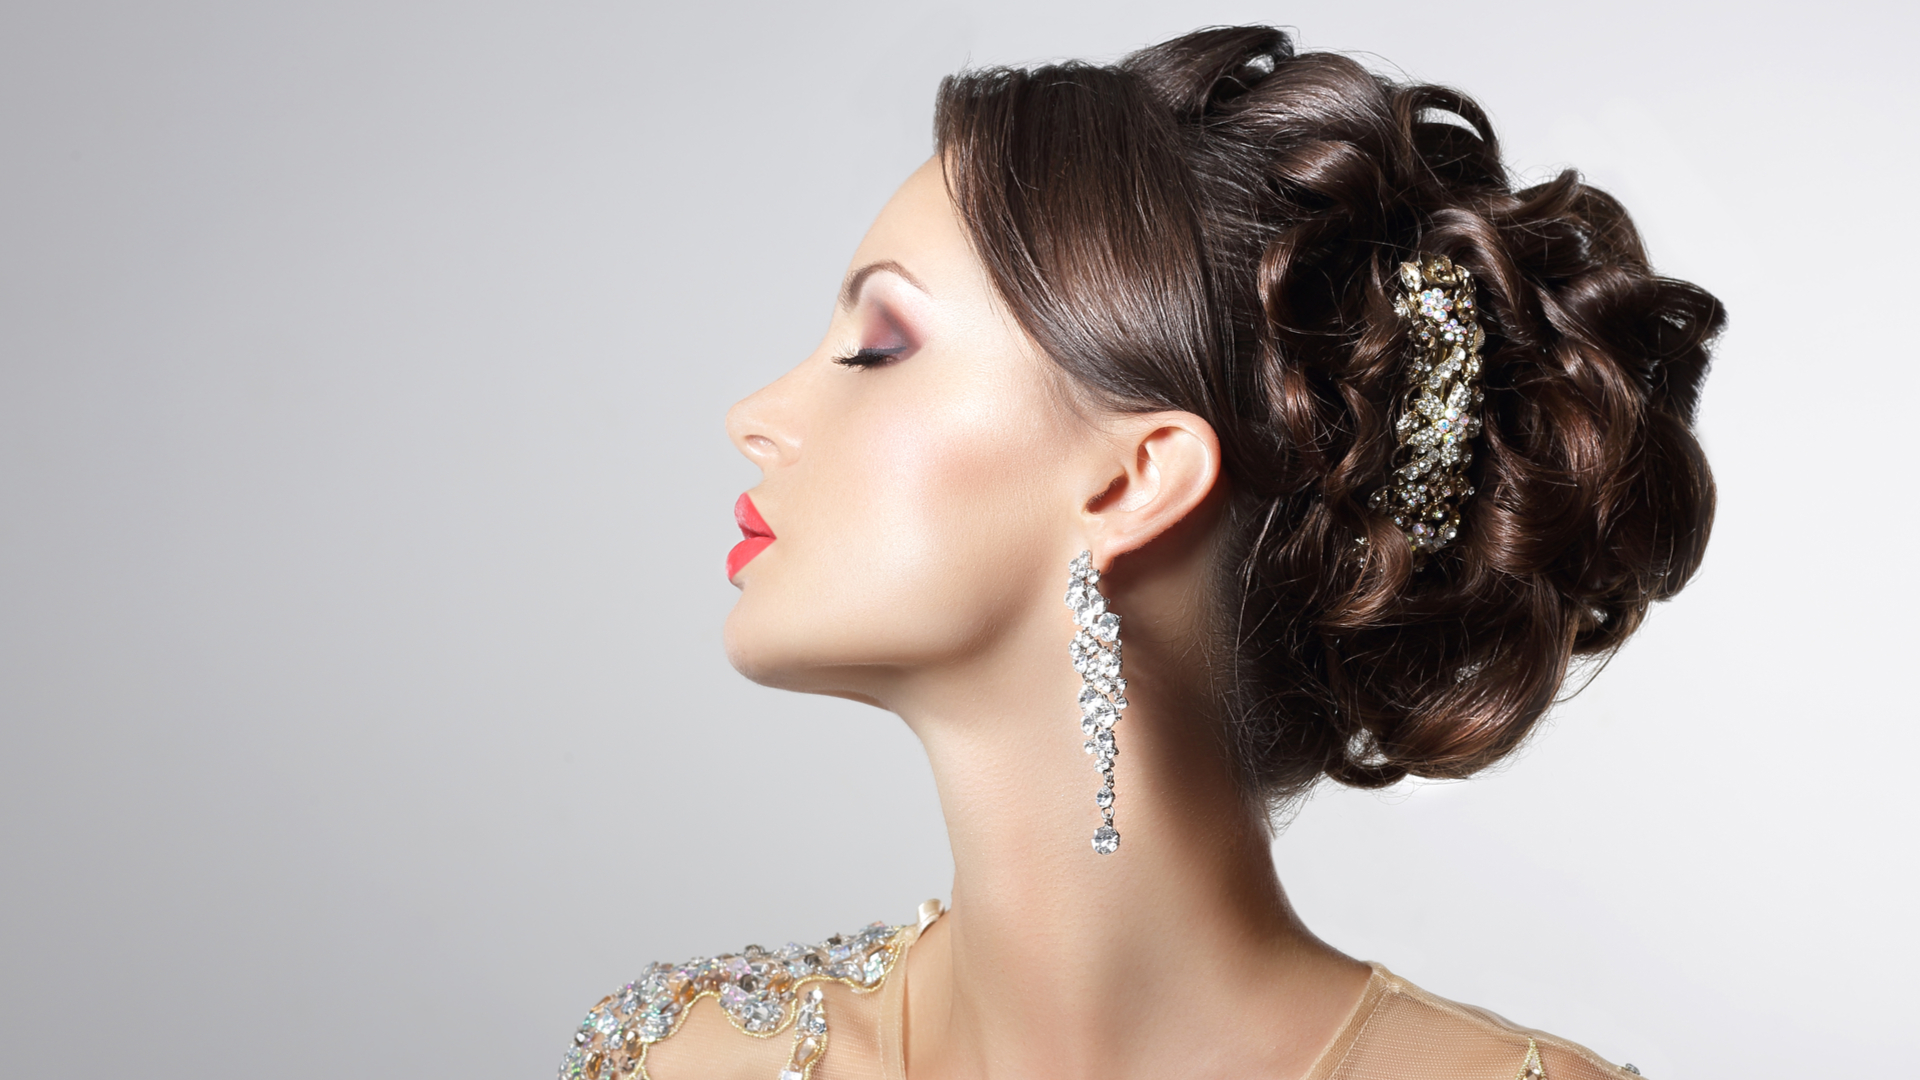 10 Trendy Updo Hairstyles For Your Formal Or Special Event